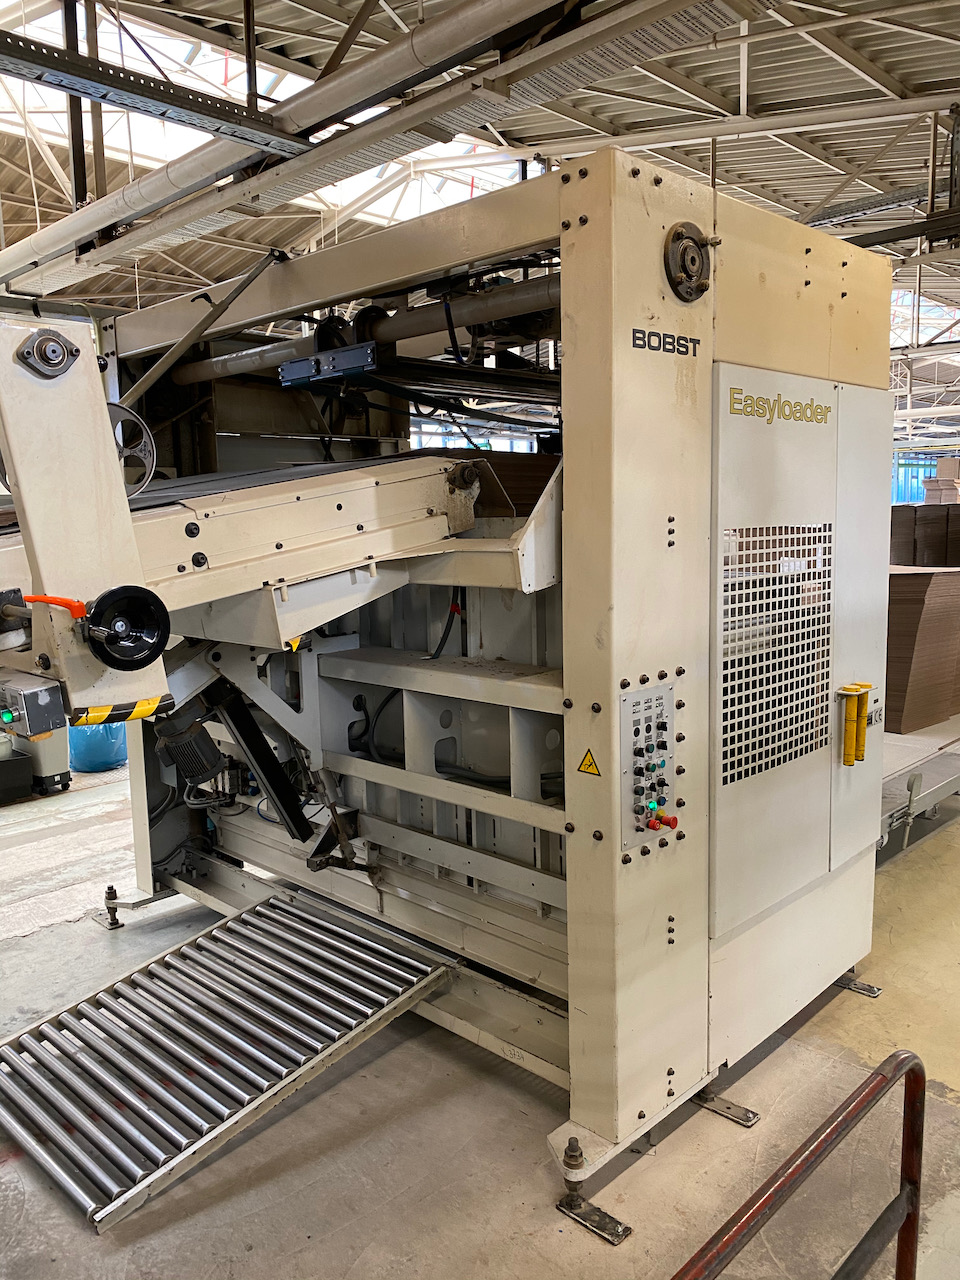 BOBST EASYLOADER C 160 S PREFEEDER FOR AUTOMATIC DIE-CUTTING